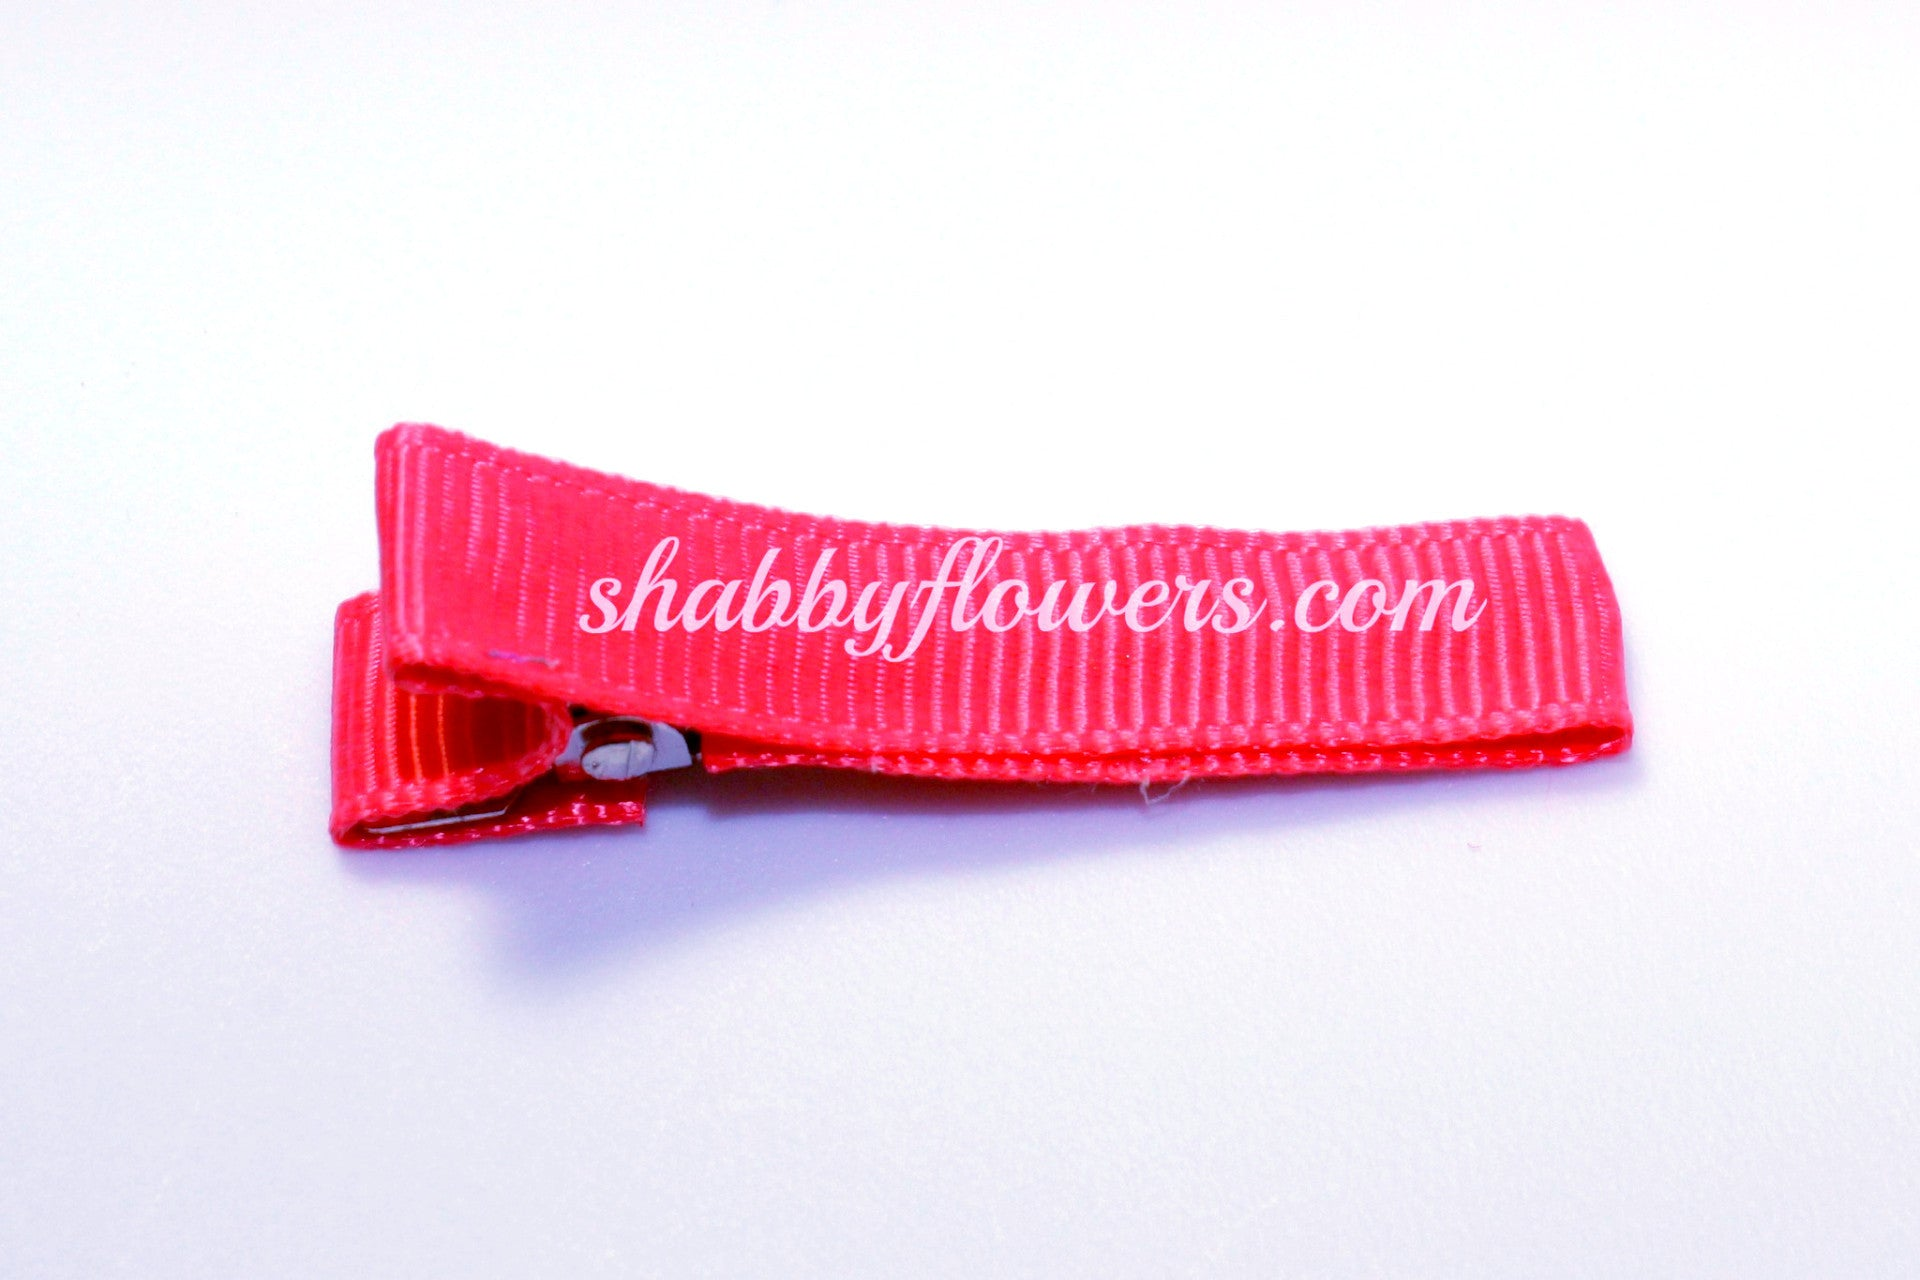 Lined Clip in Hot Pink - shabbyflowers.com